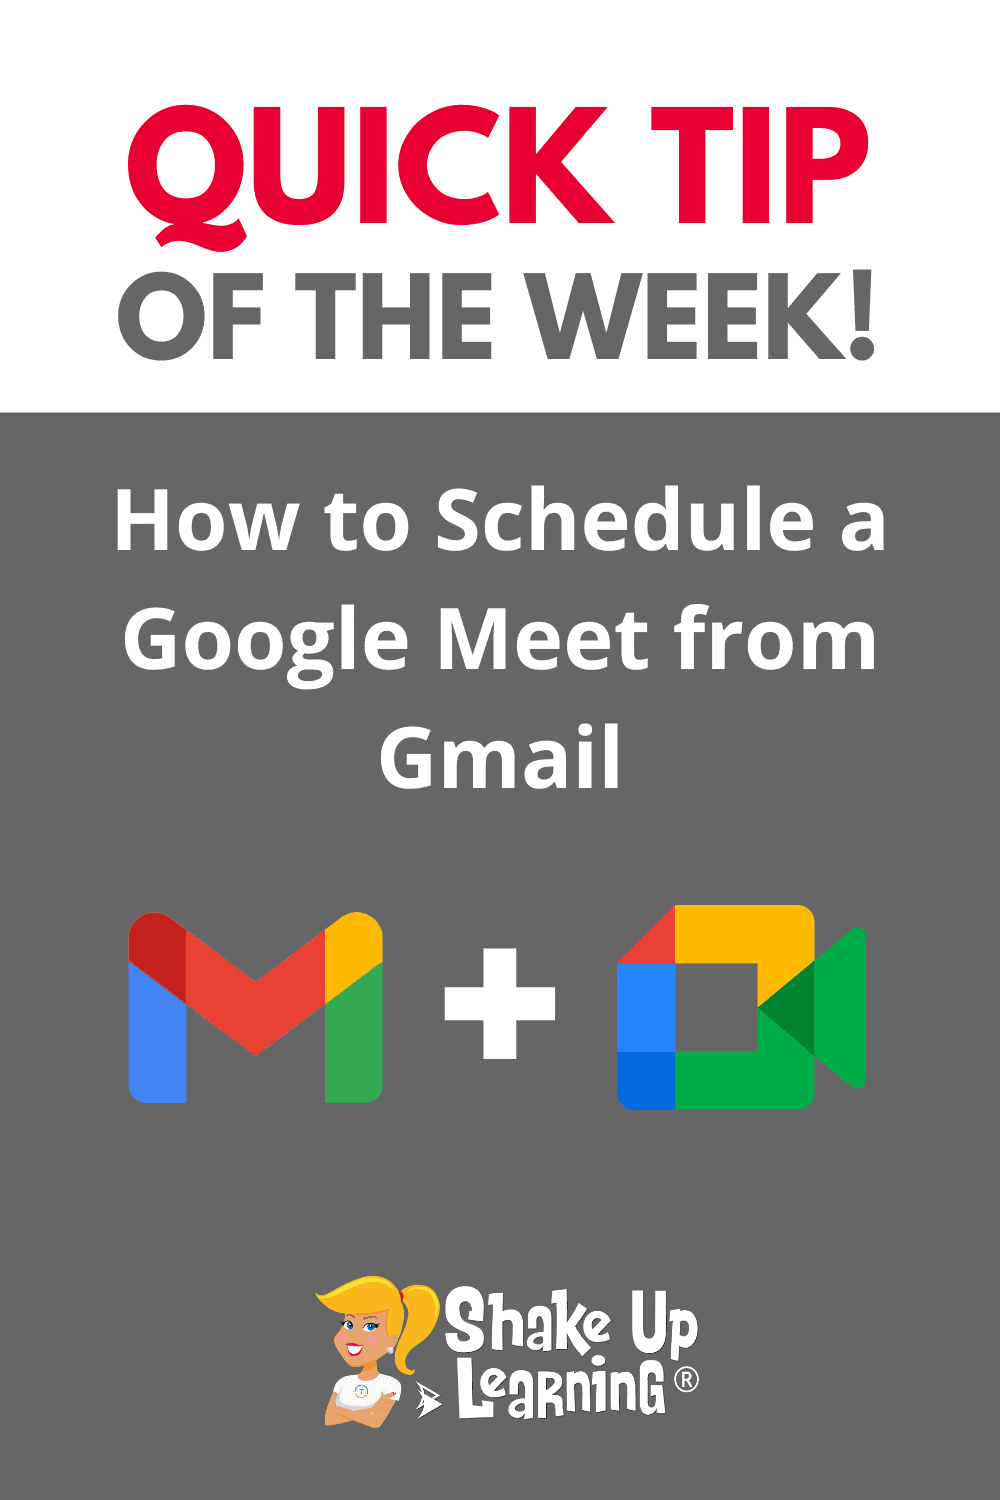 How to Schedule a Google Meet from Gmail